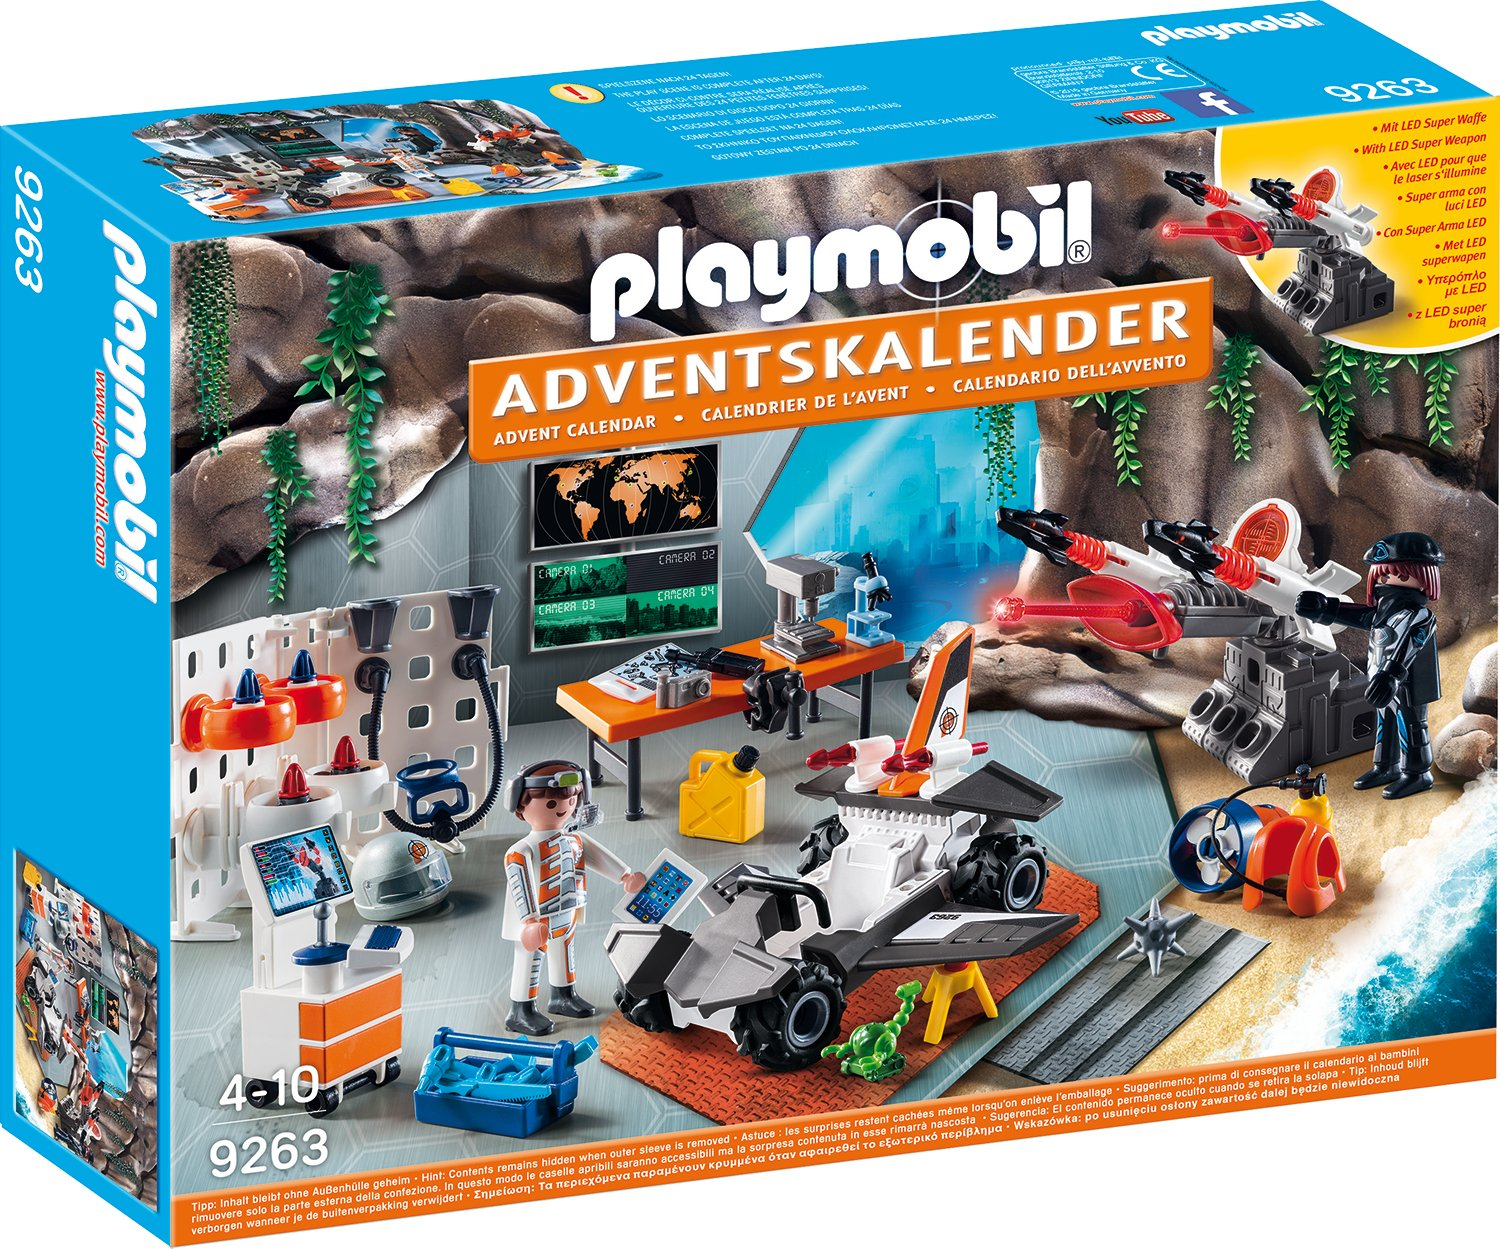 Playmobil 9263 - Adventskalender Spy Team Werkstatt de toys GEOVR